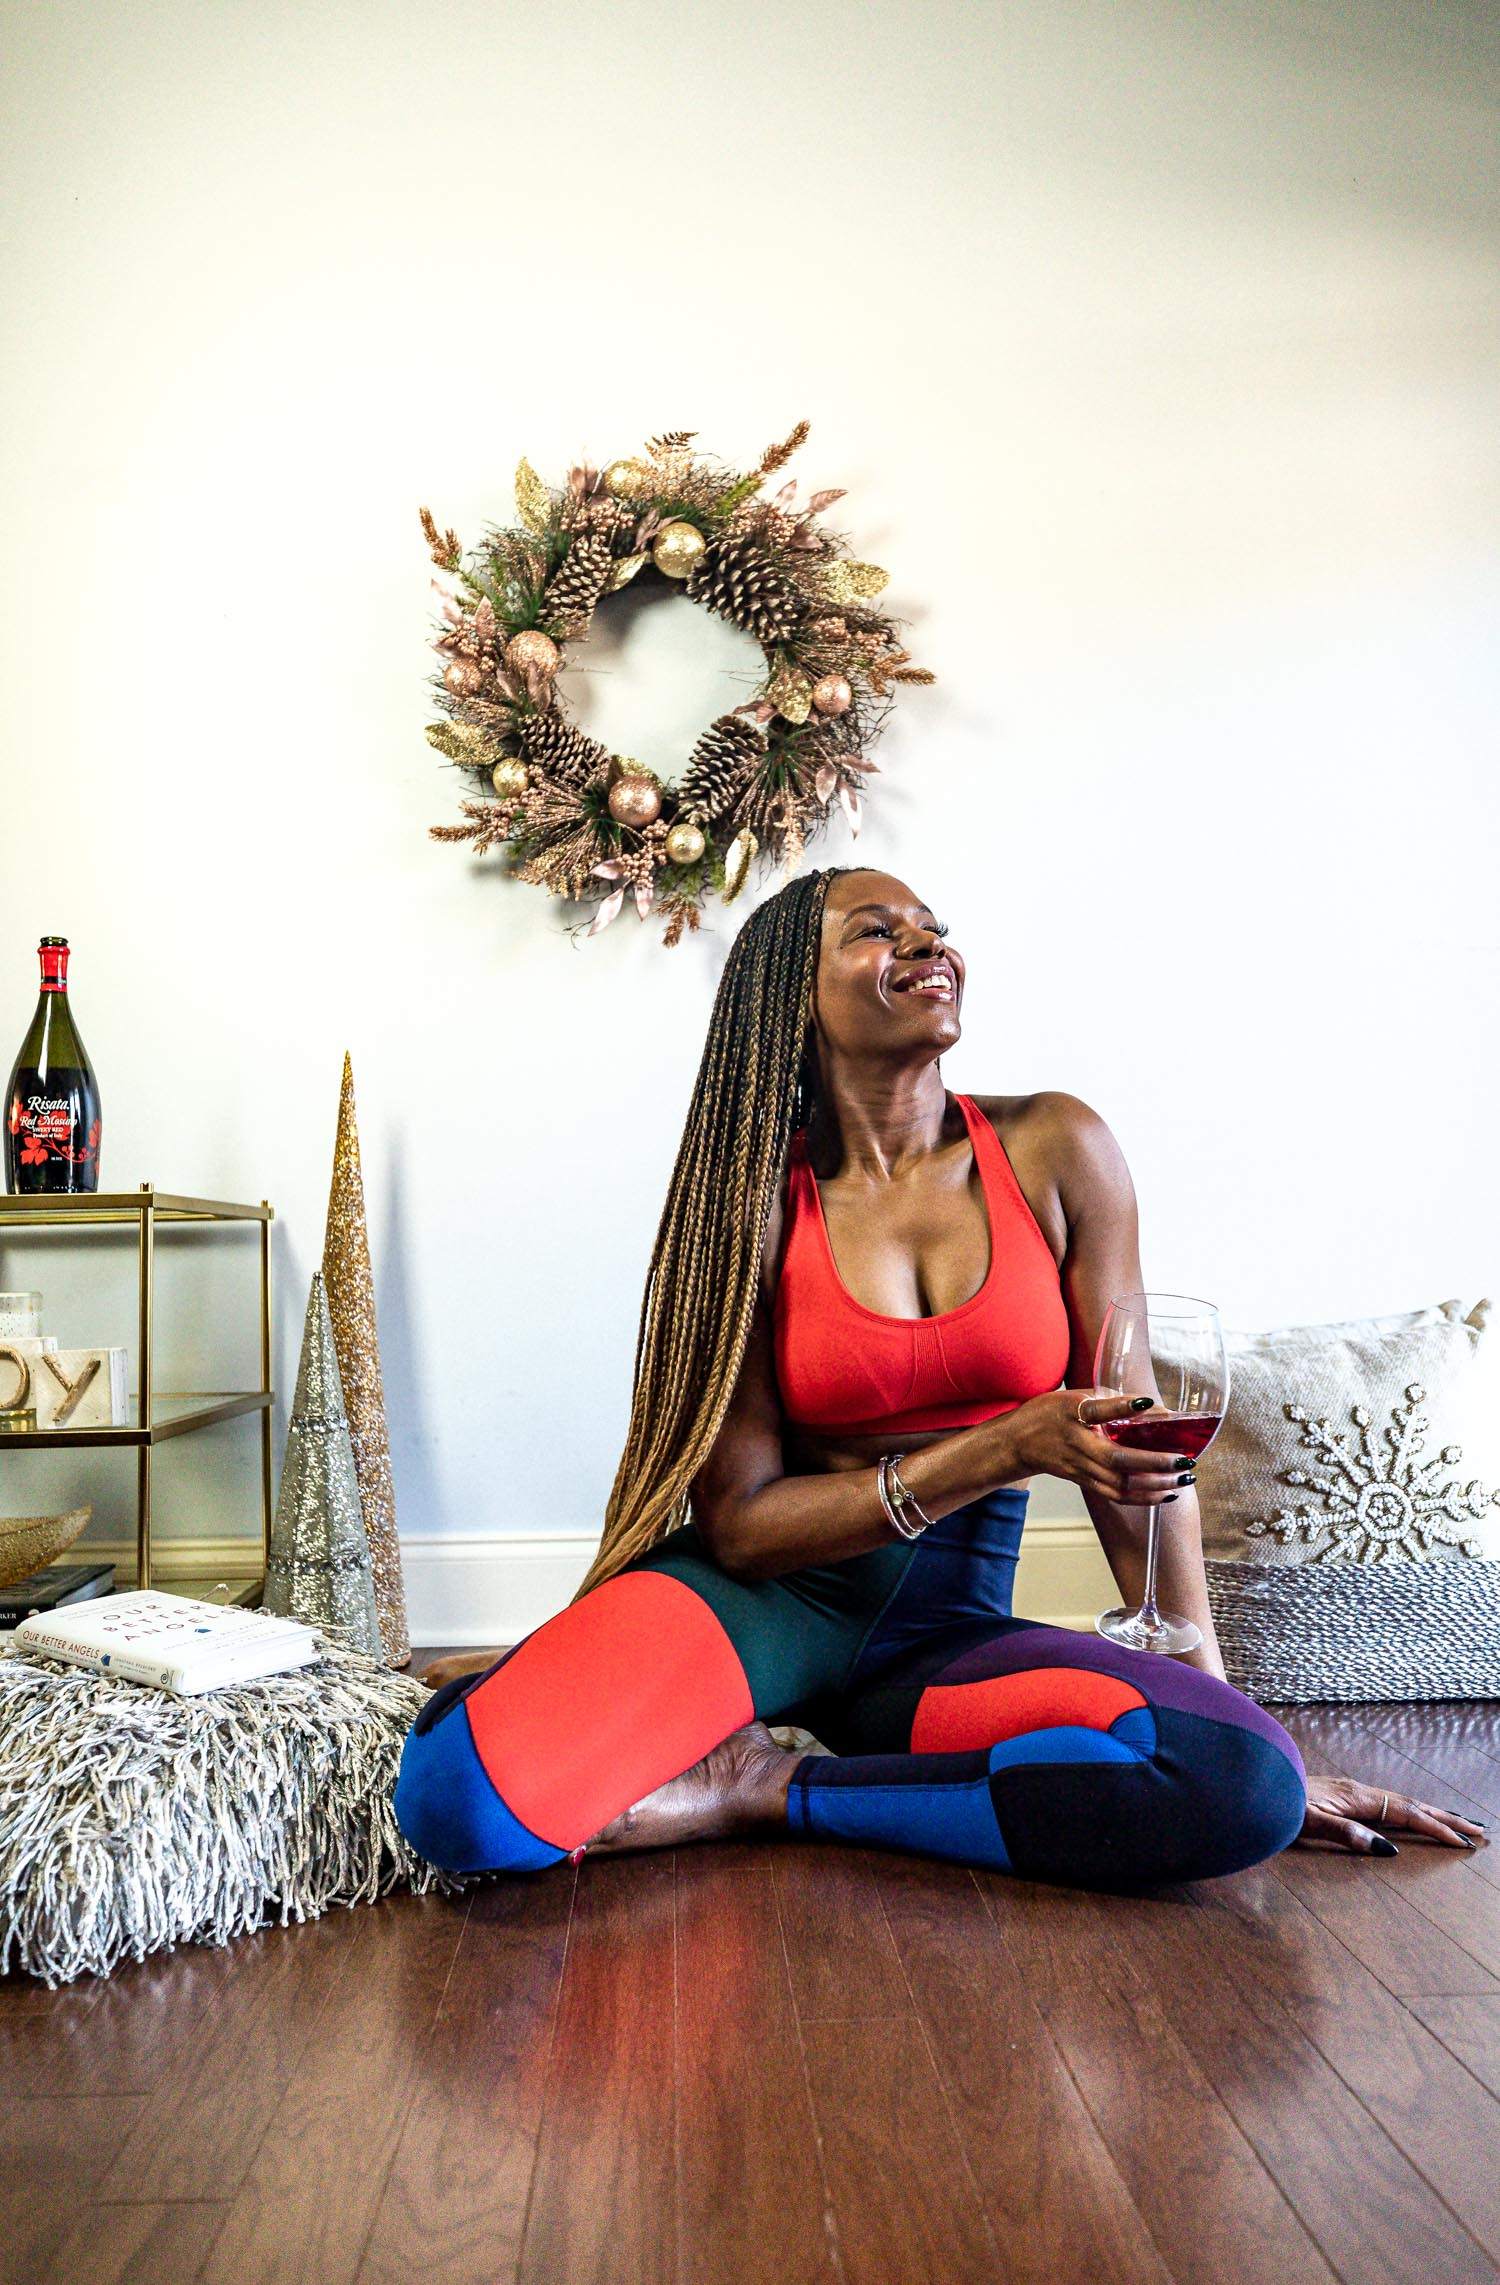 top atlanta blogger celebrating the holidays with self care and risata wines, tory burch sport, mediation, yoga, what to wear to mediate, what to wear for yoga, holiday season